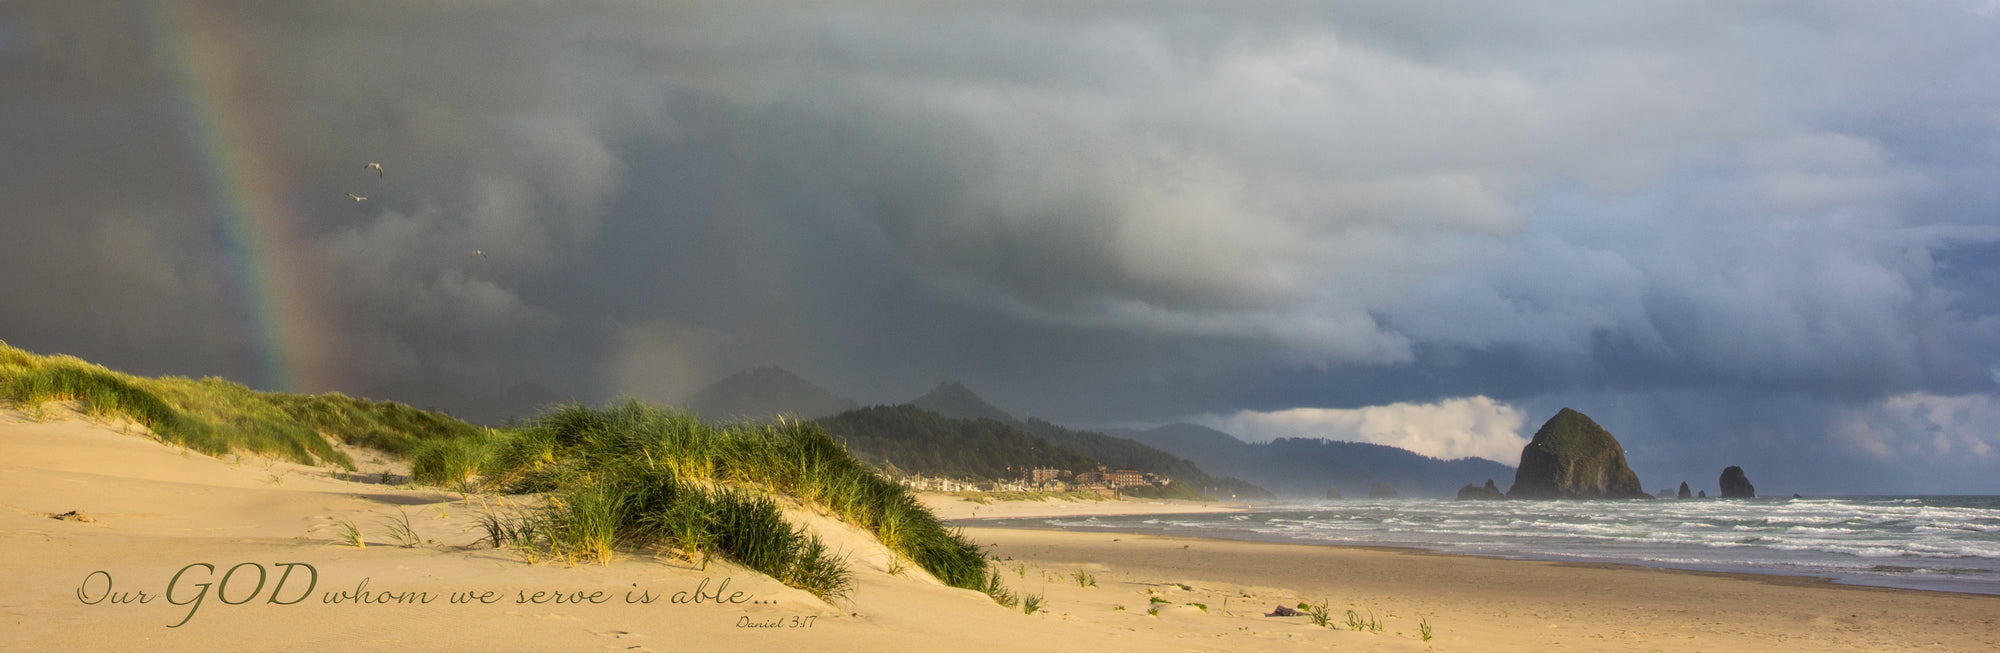 Storm and rainbow over beach at Haystack Rock, Oregon with scripture verse